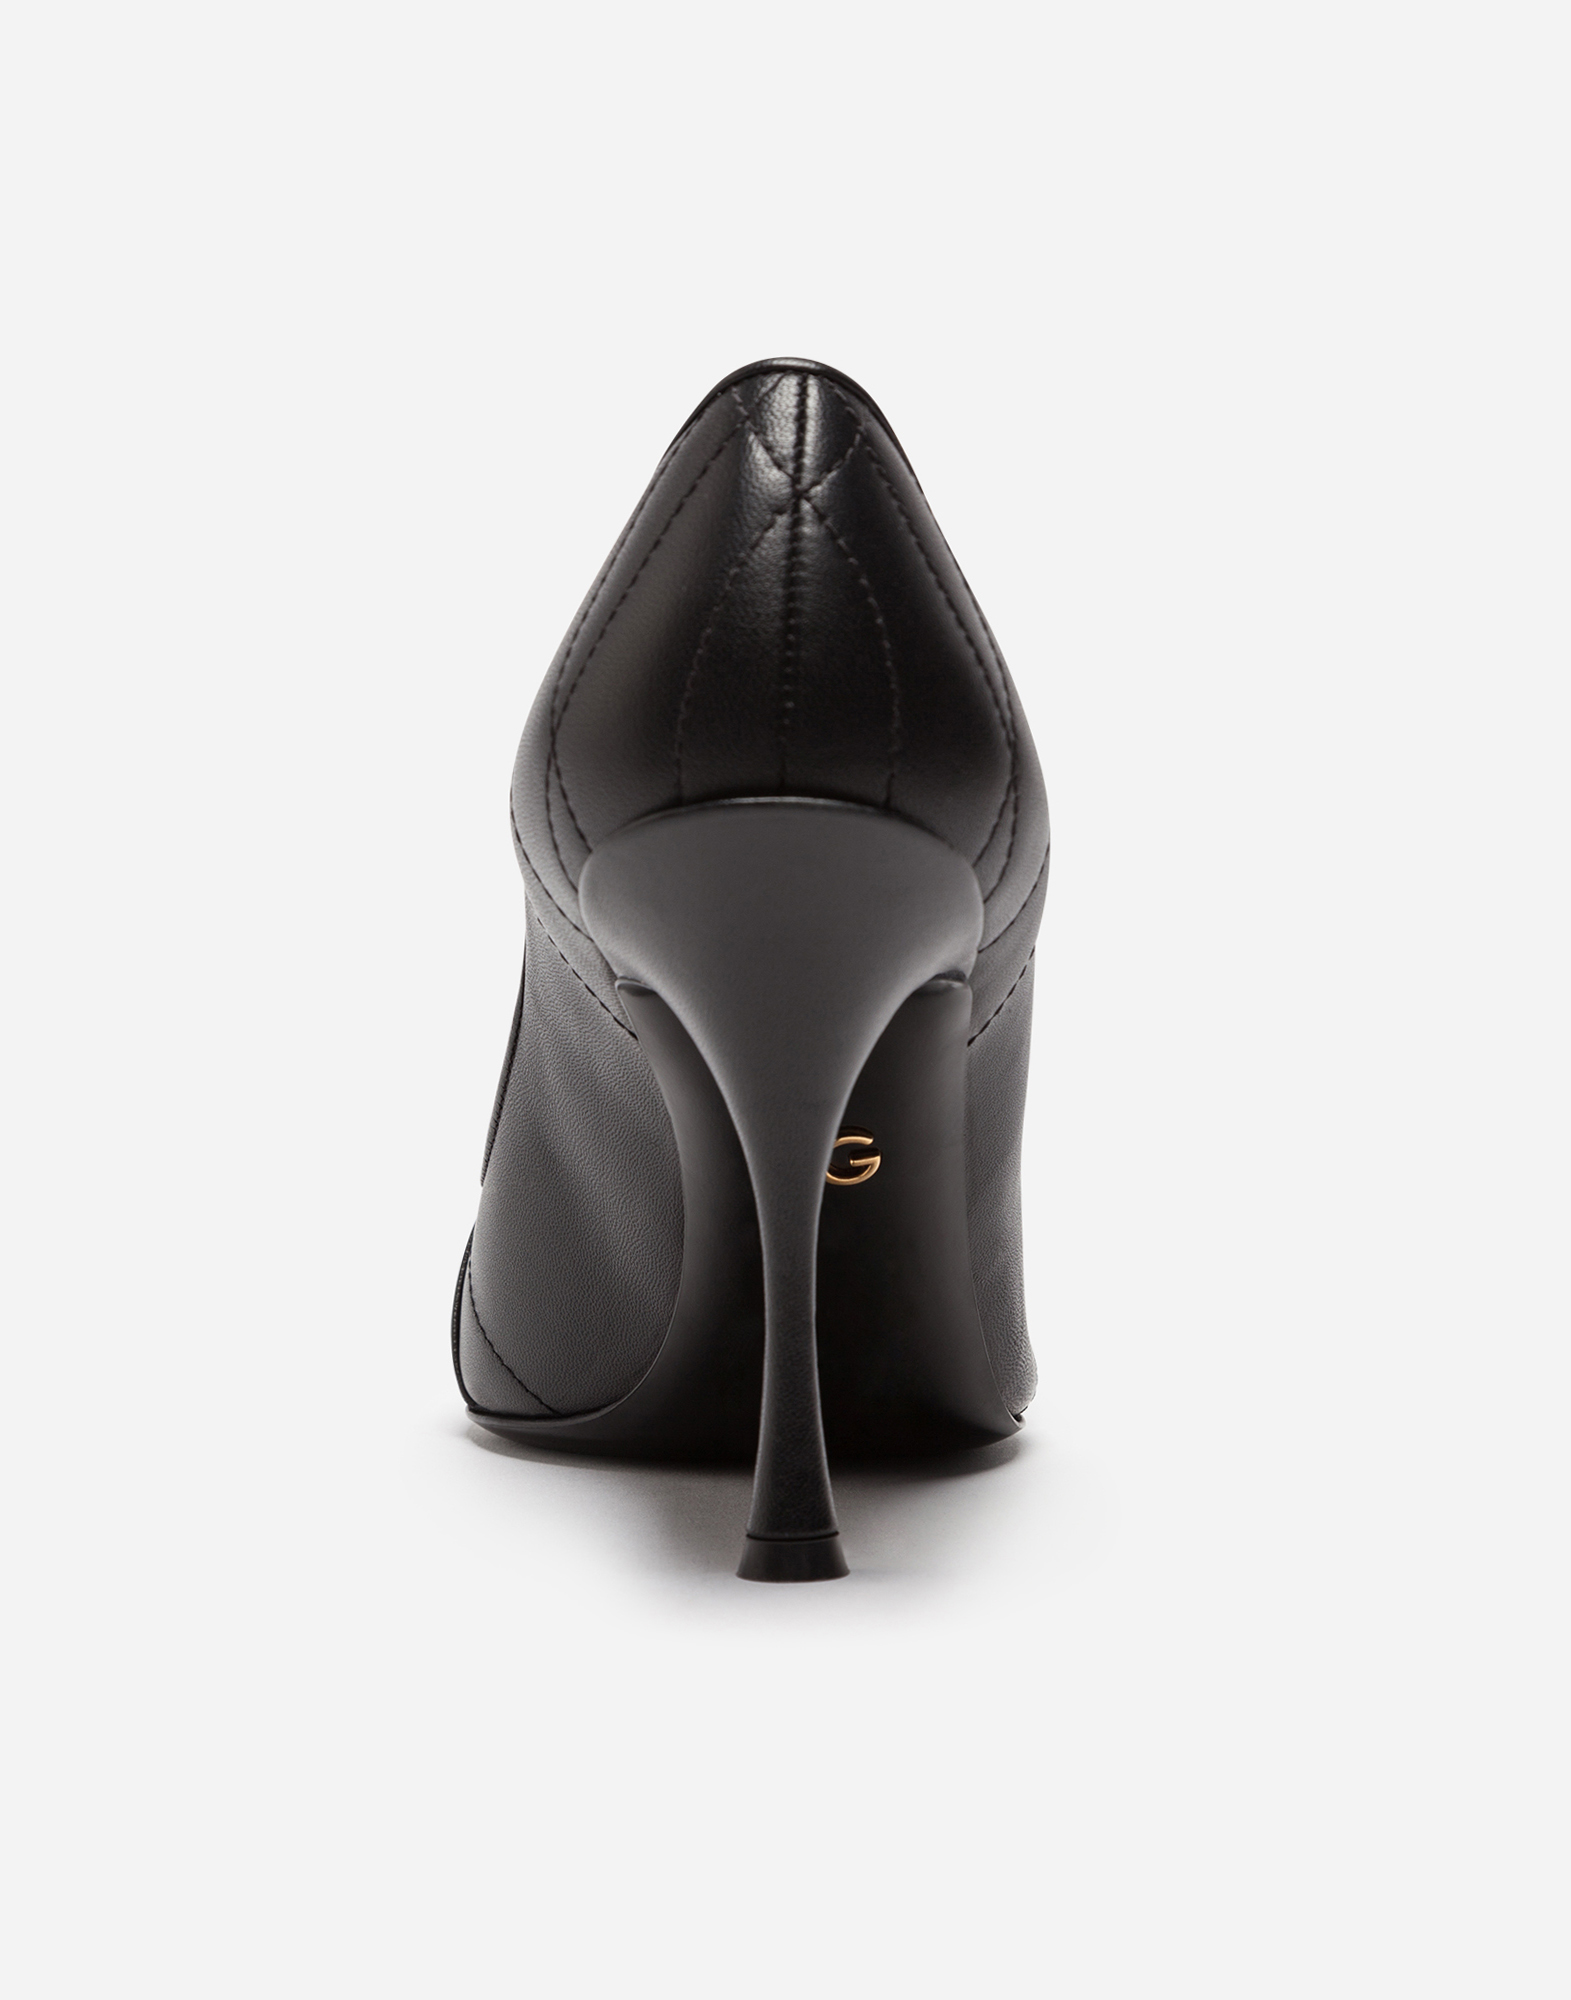 DEVOTION PUMPS IN MATELASSÉ NAPPA LEATHER